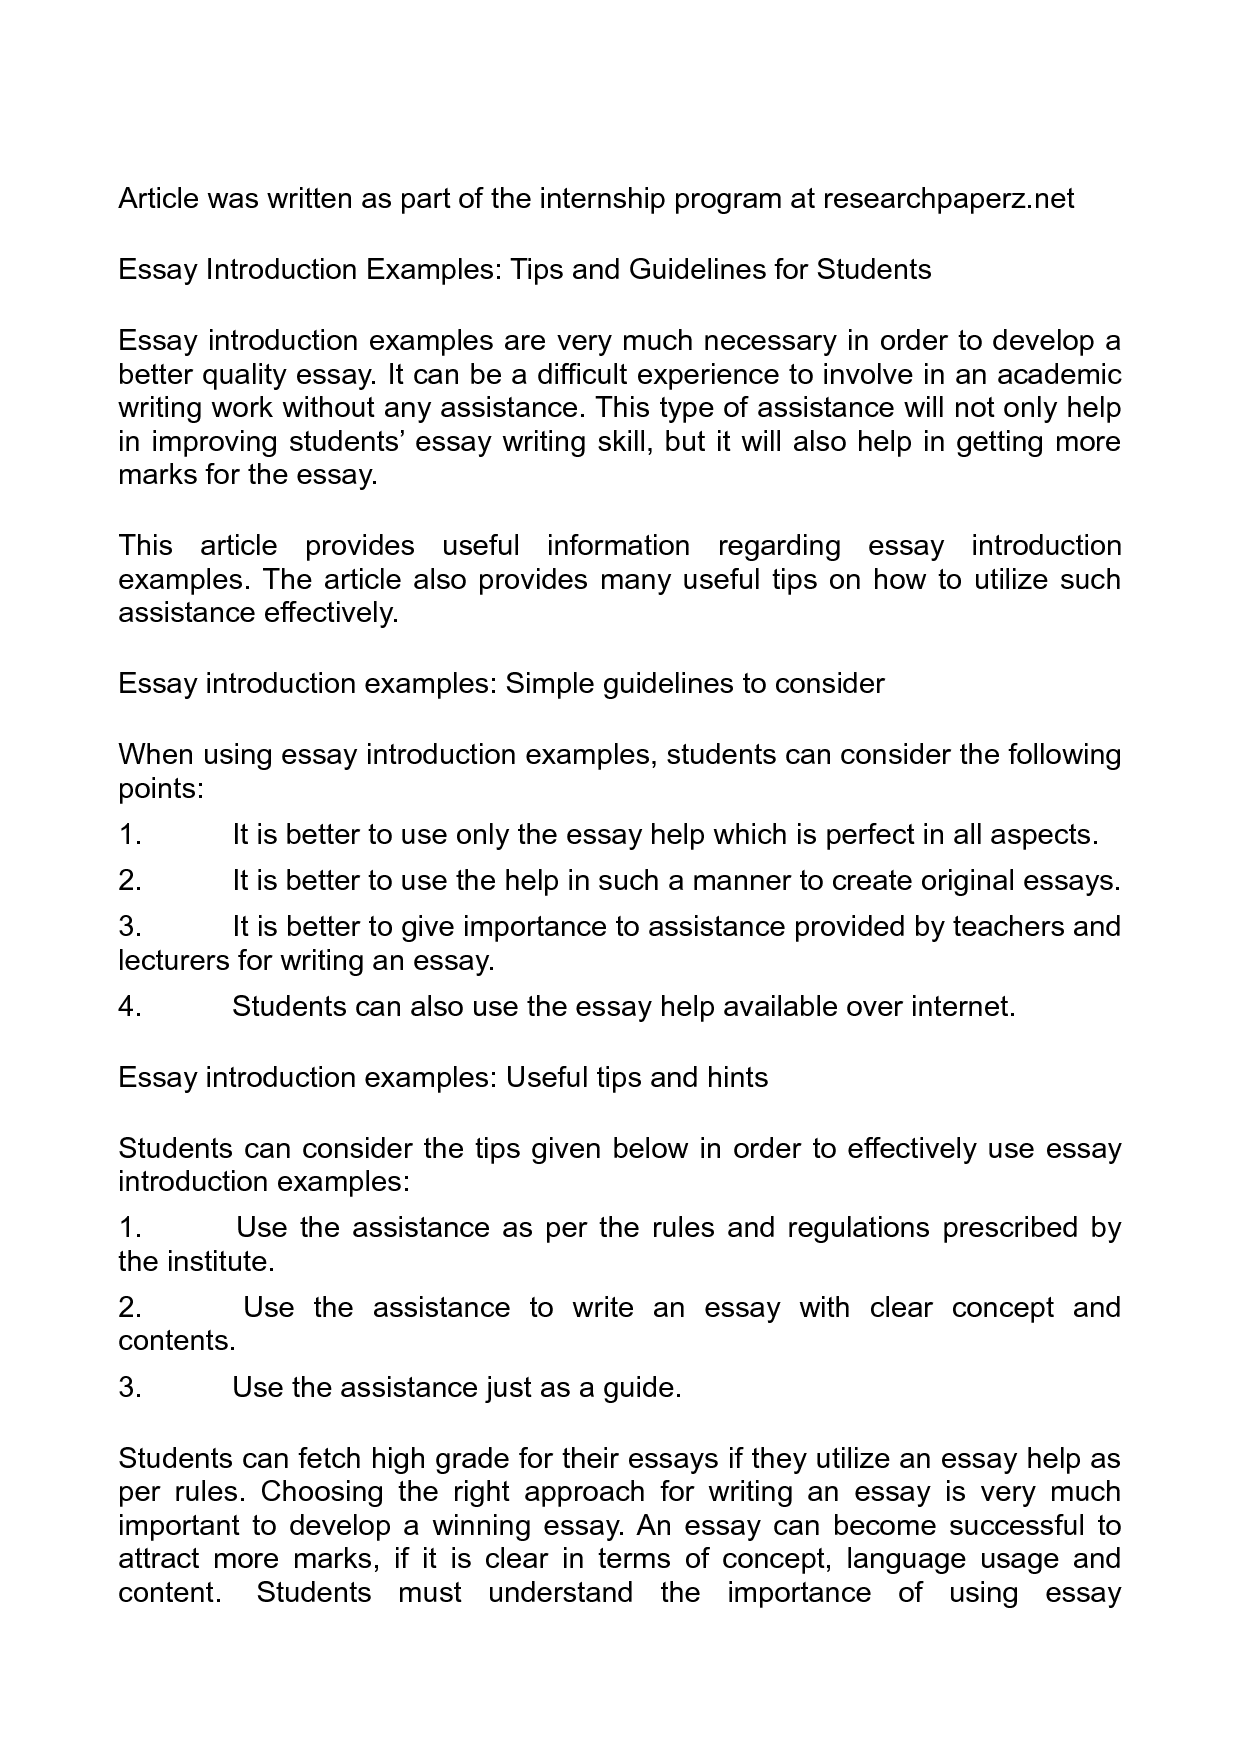 013 How To Make Good Hook For An Essay Eyx5t6okob Outstanding A Catchy Narrative Great Full